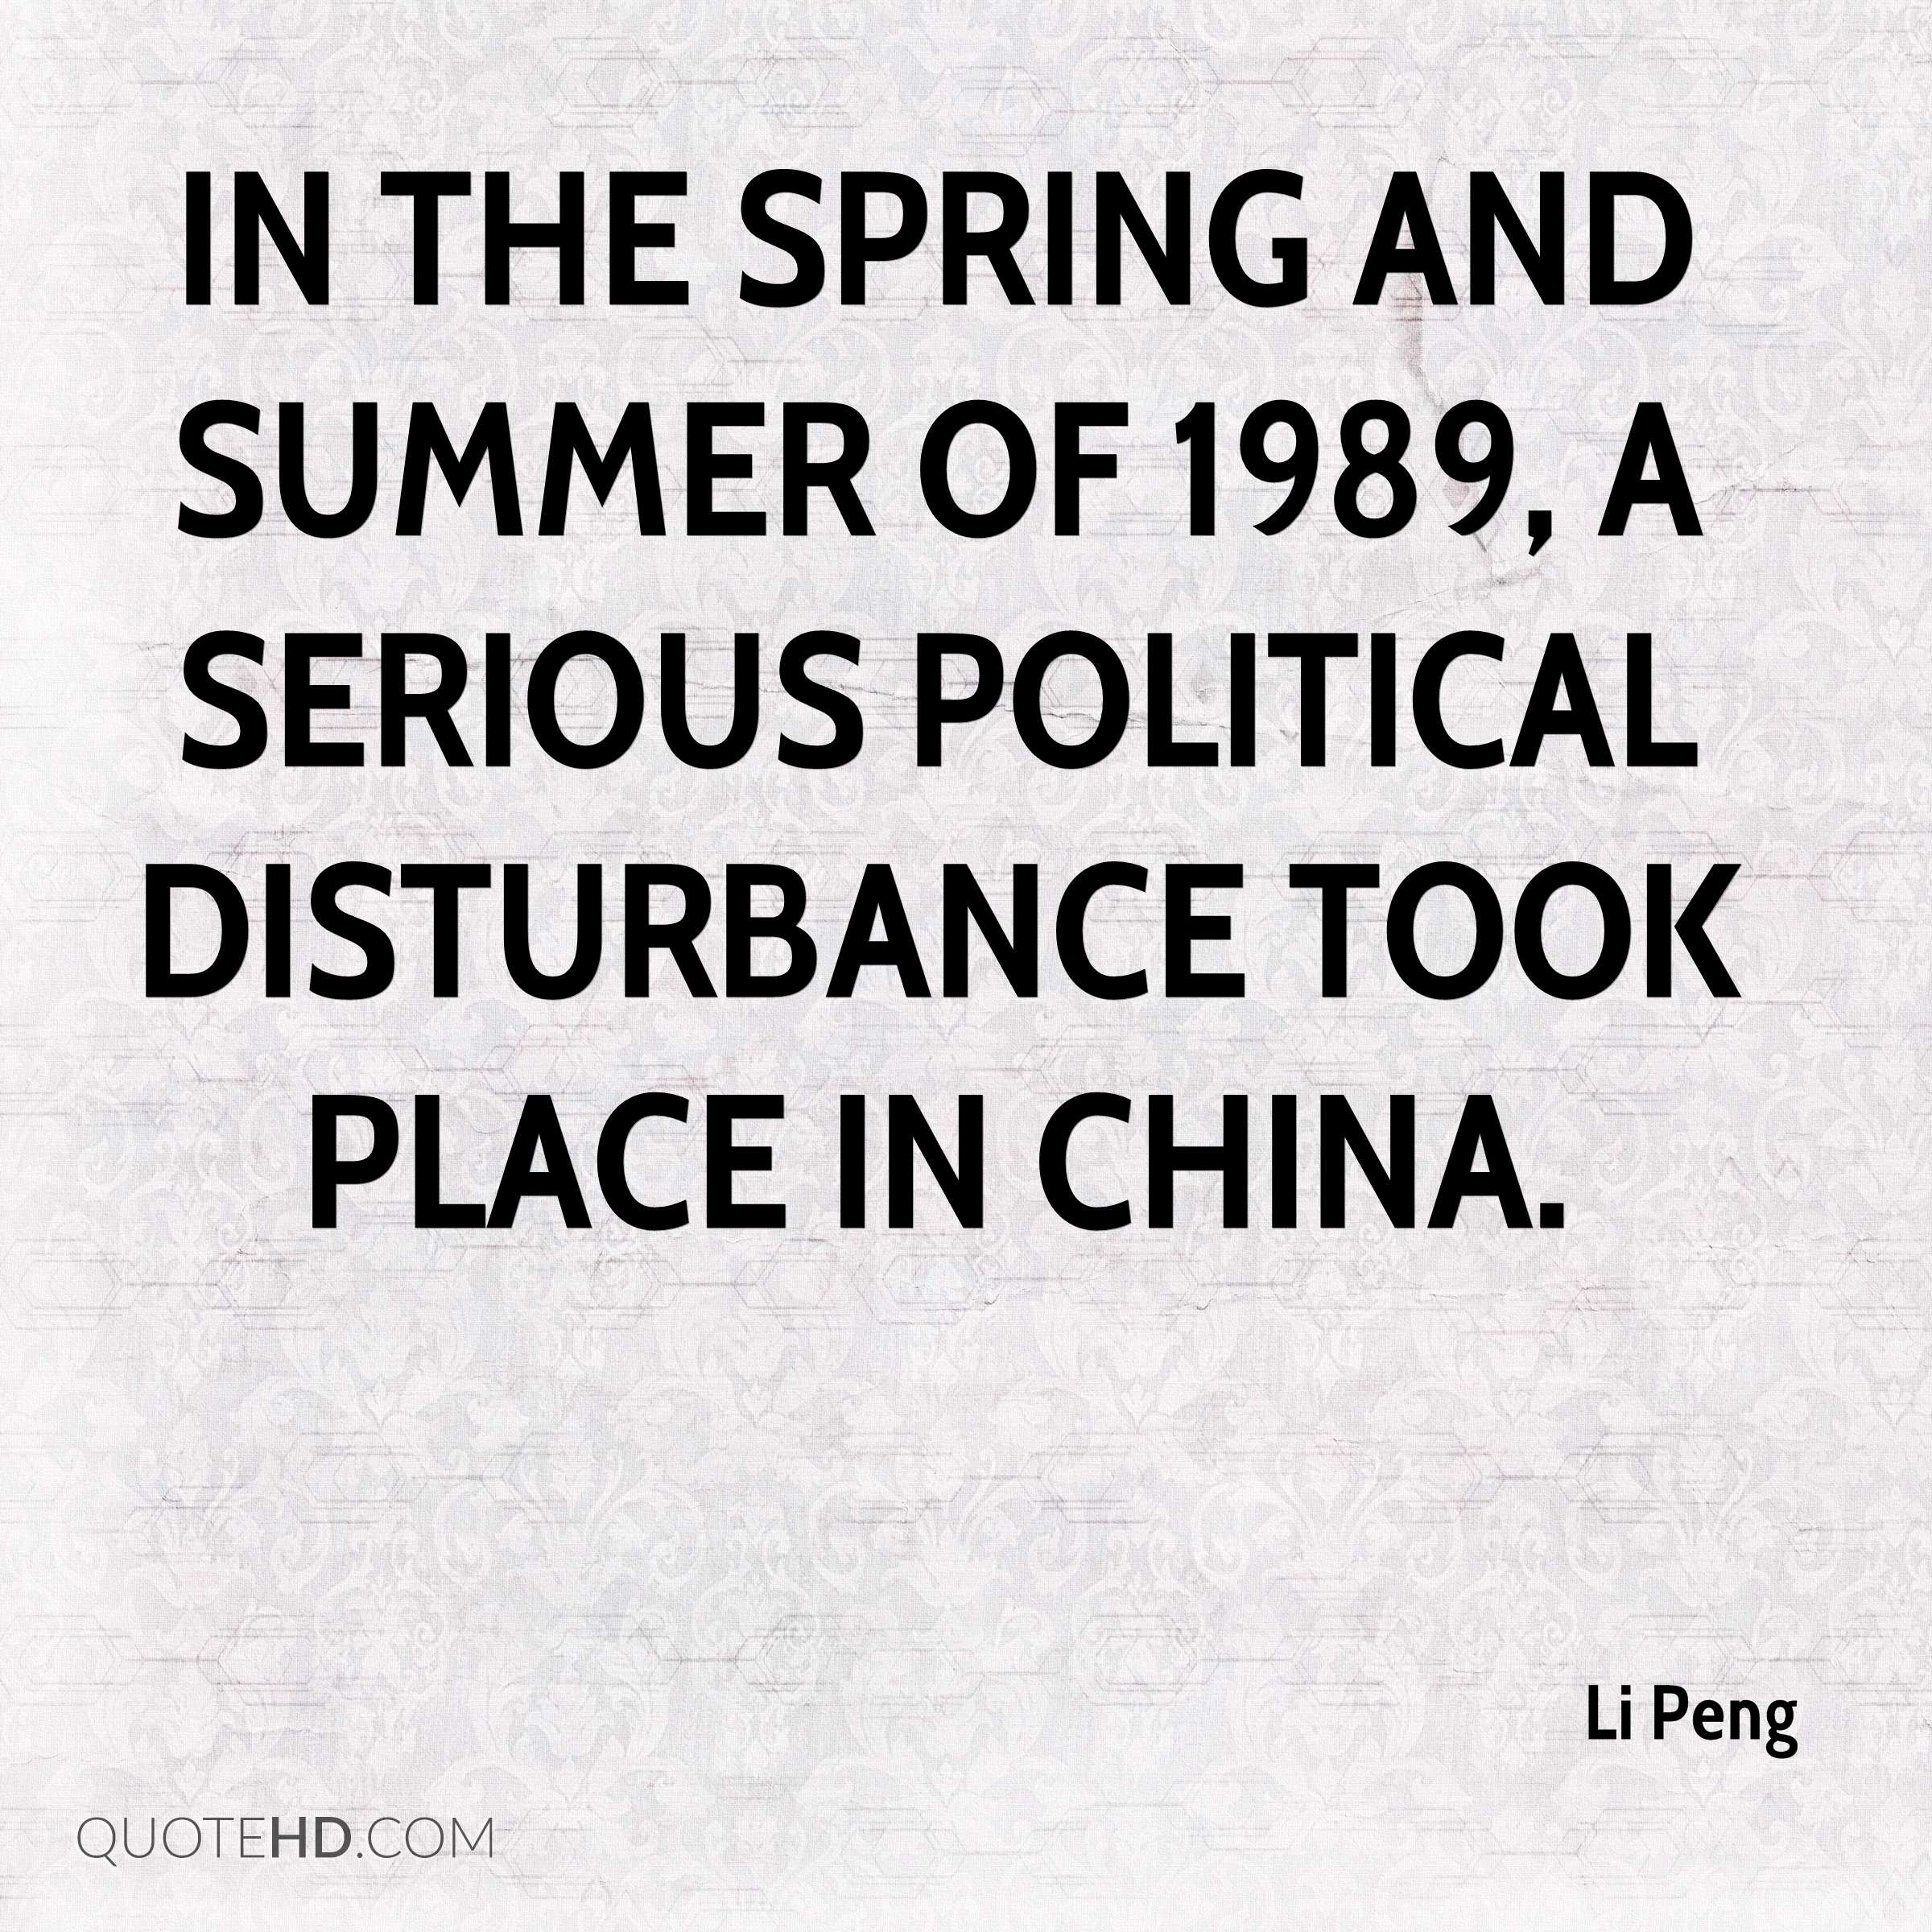 In the spring and summer of 1989, a serious political disturbance took place in China.